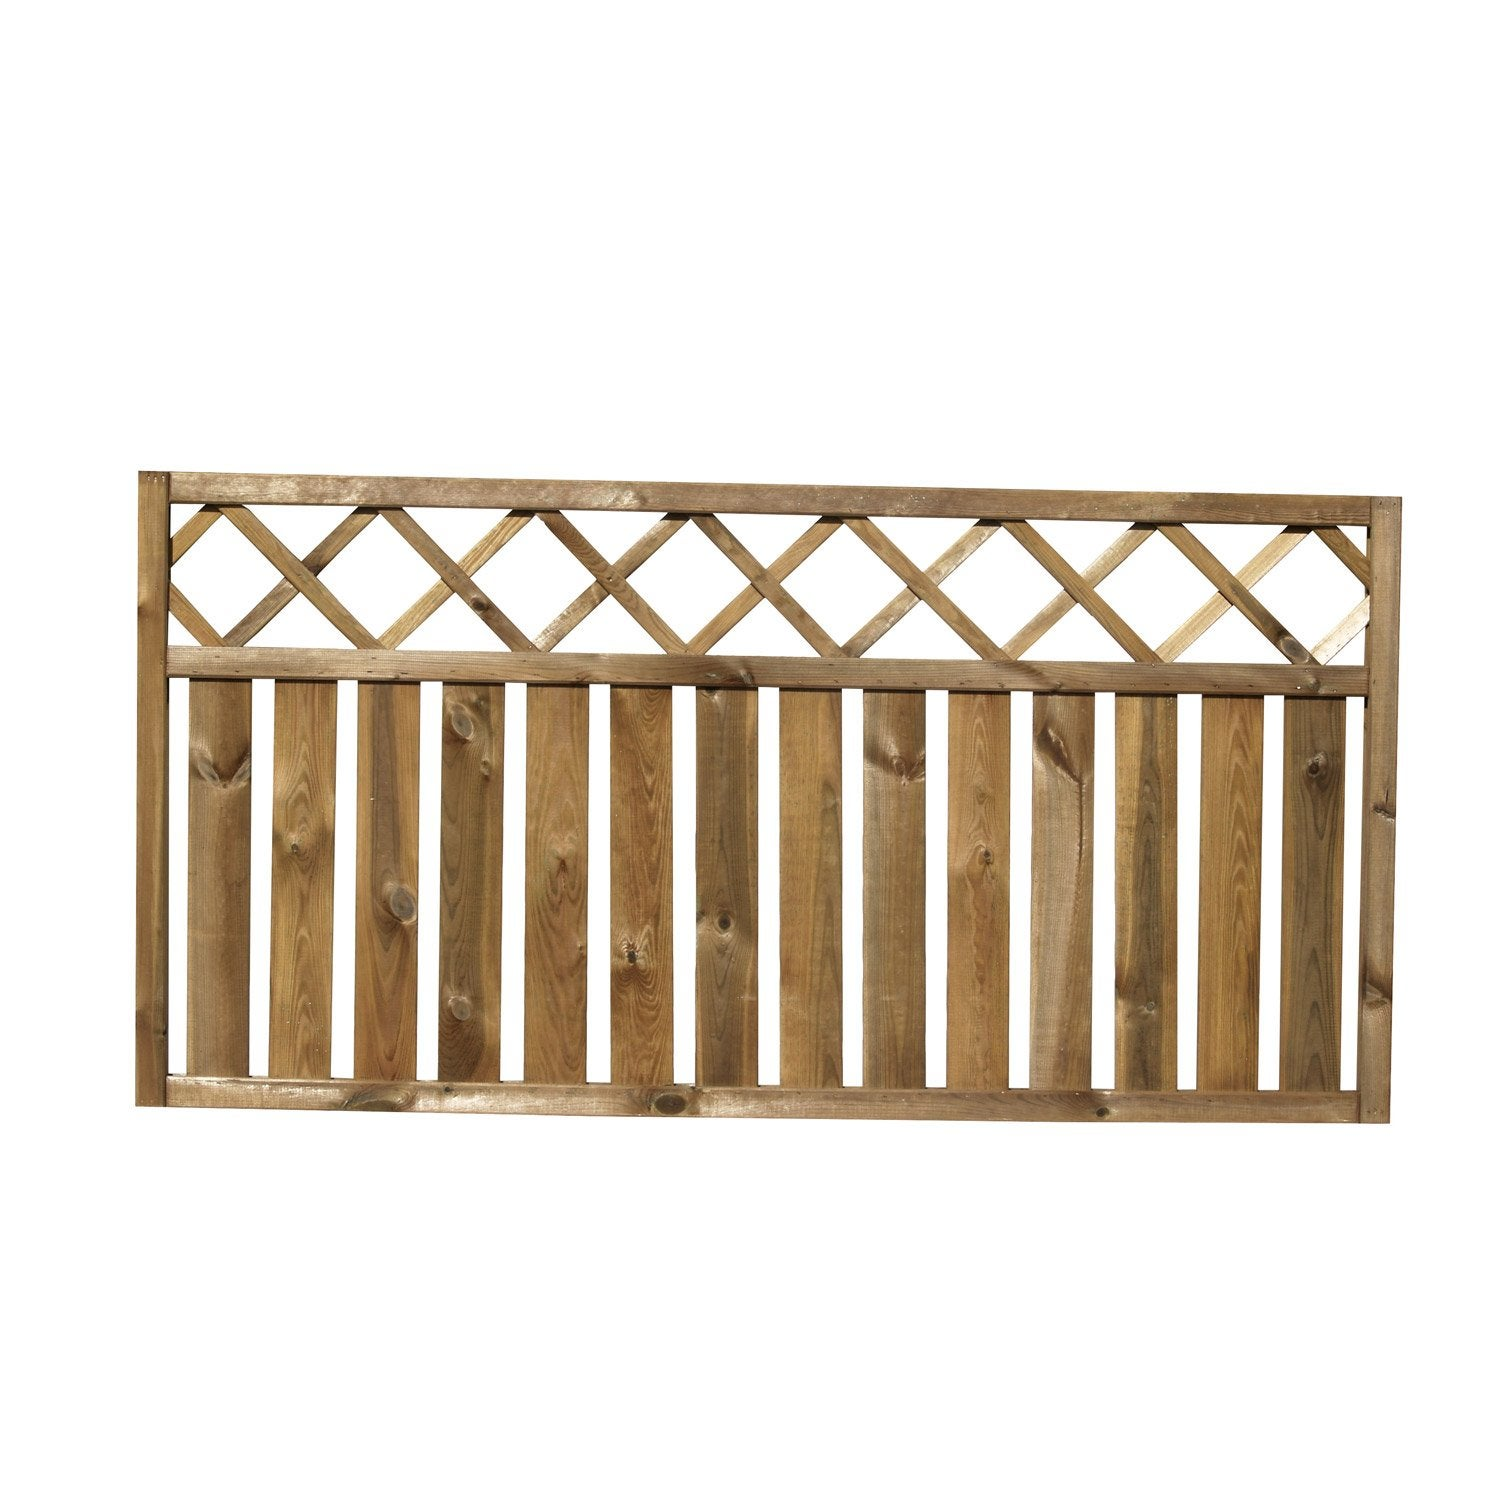 Barri re bois pinto naturel x cm leroy merlin for Barriere de jardin en bois